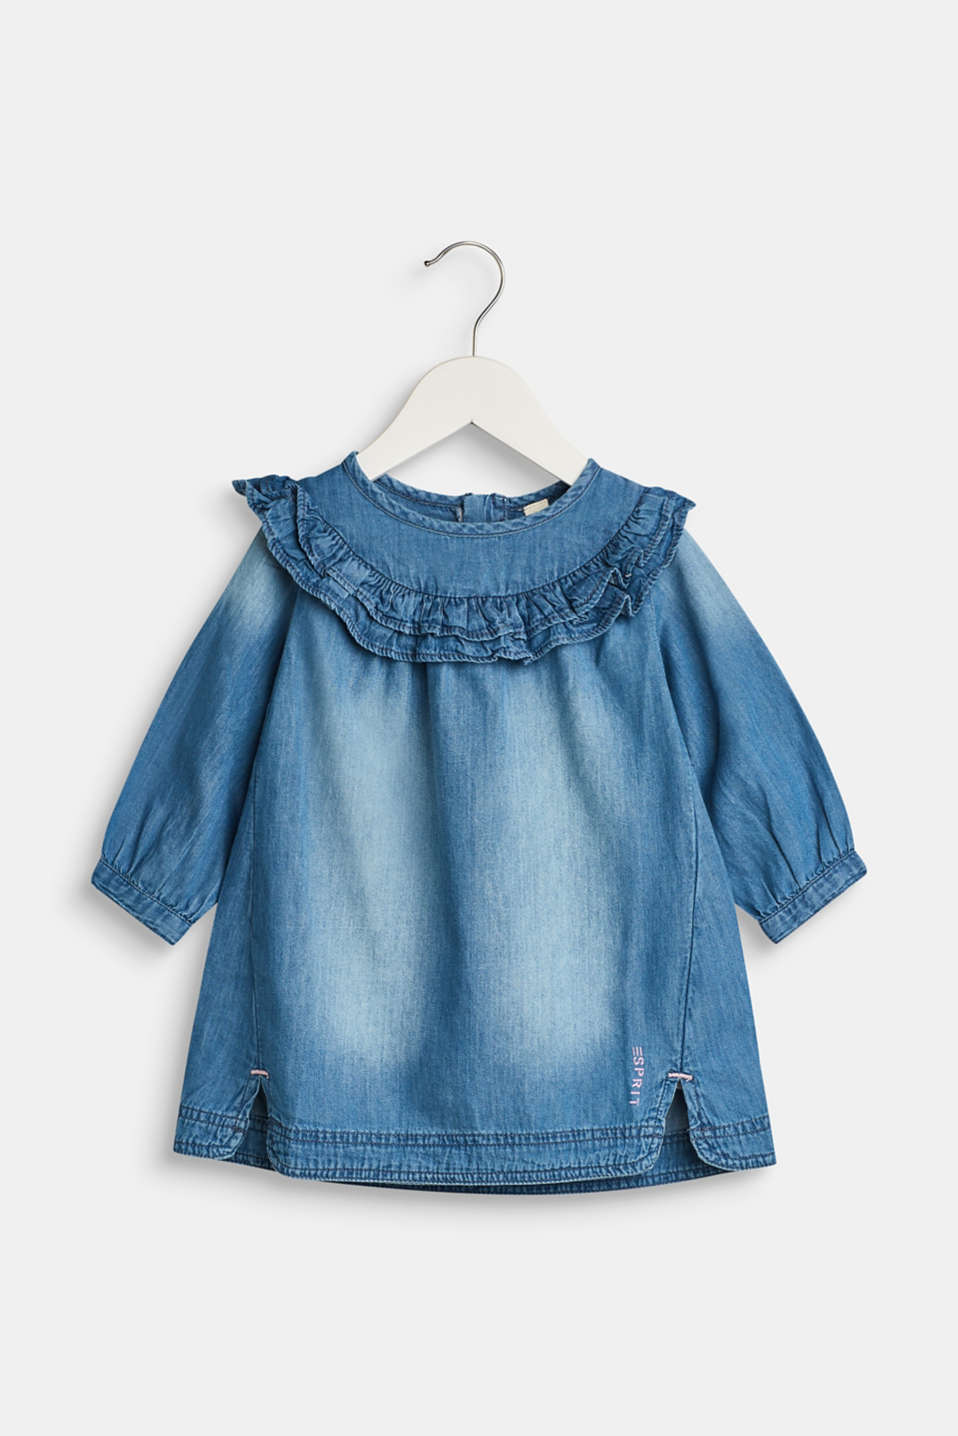 Esprit - Denim dress with a frilled collar, 100% cotton